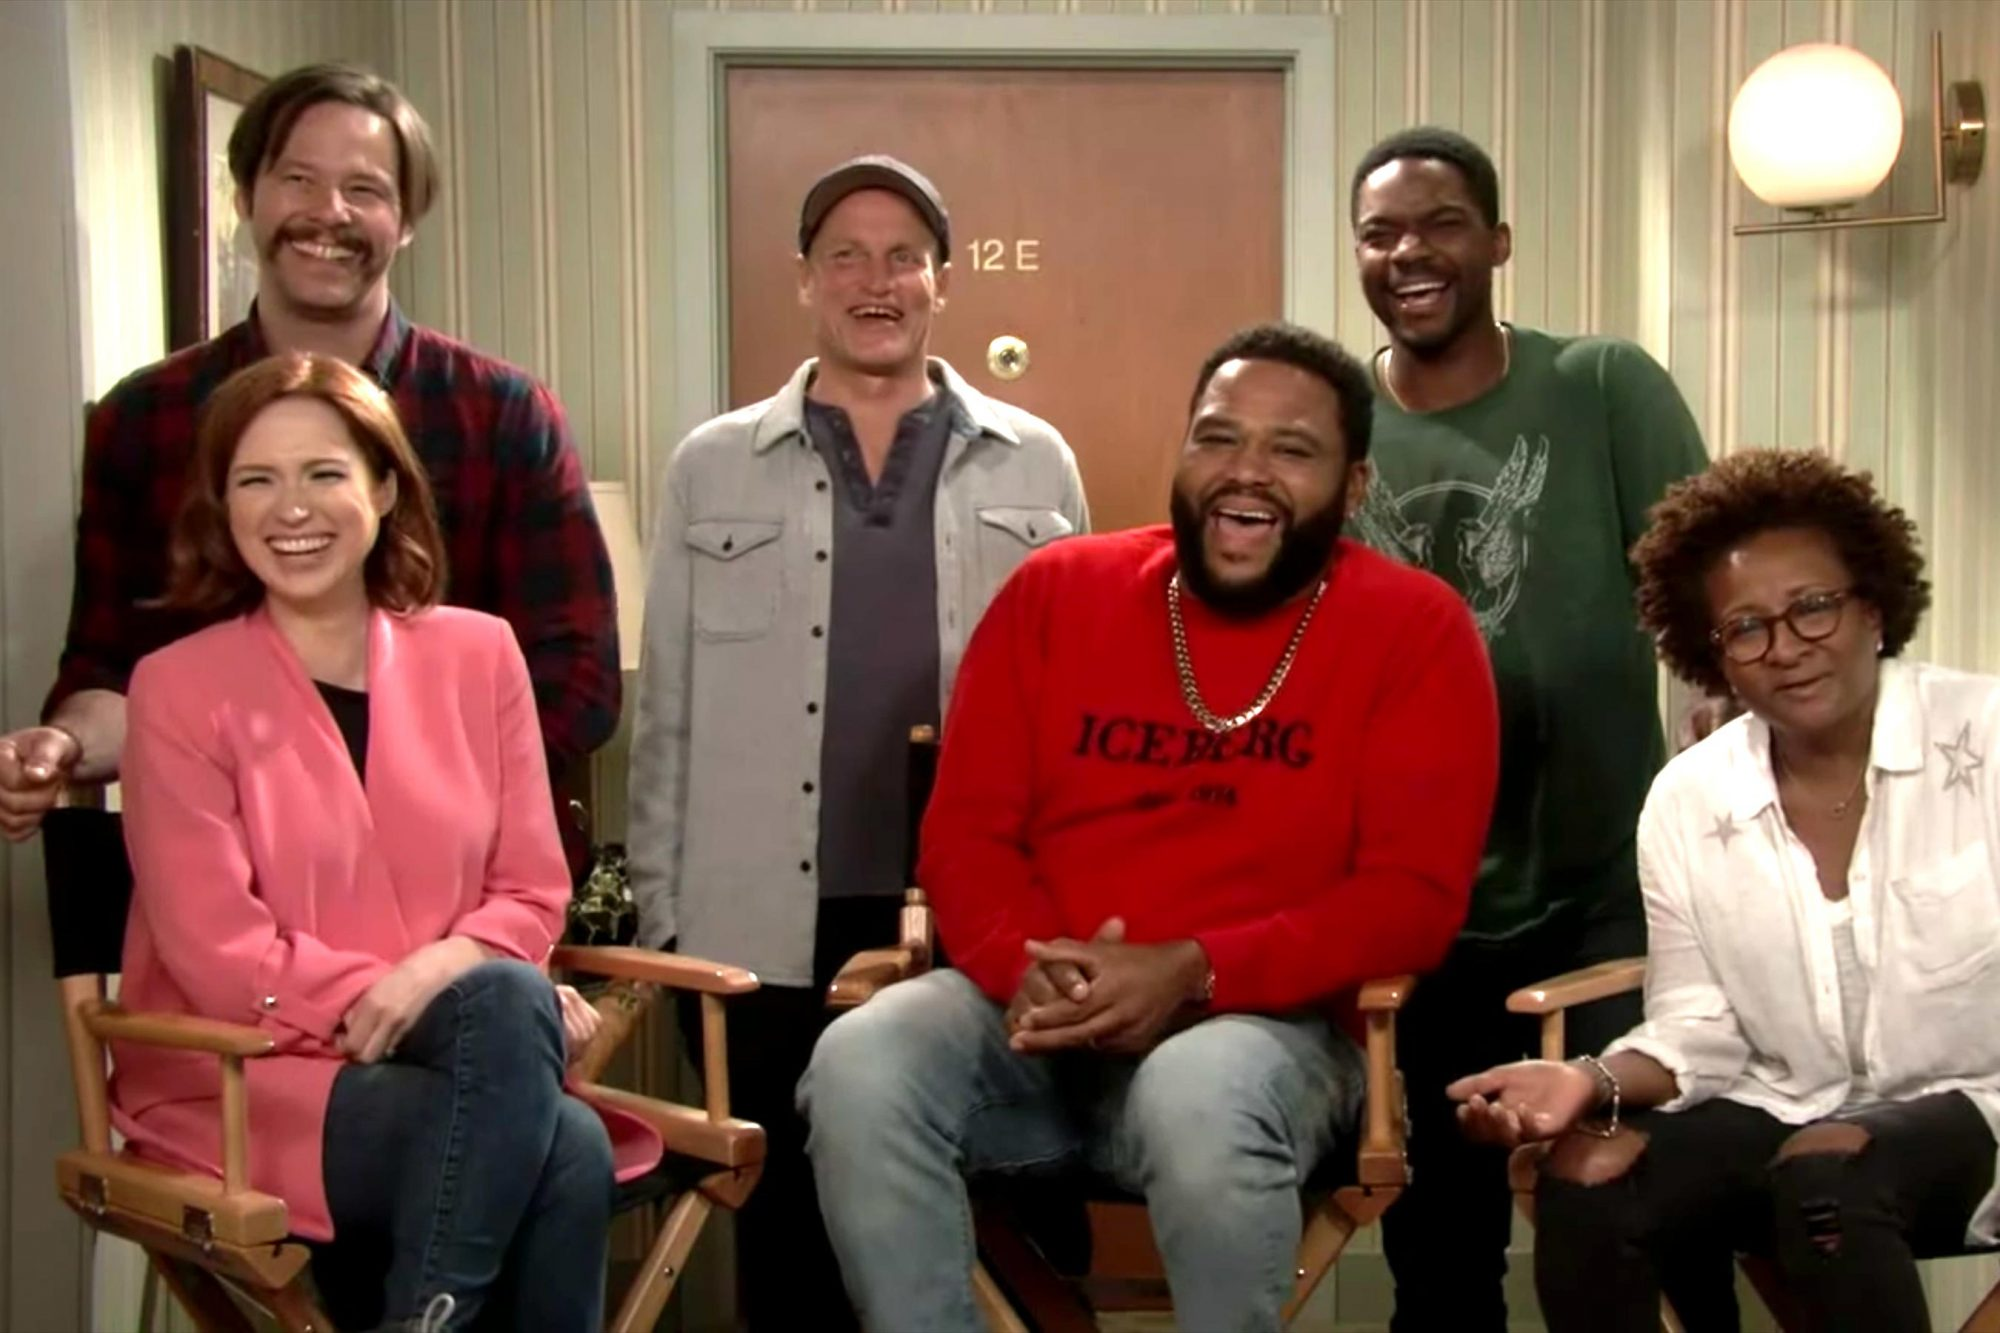 Jimmy Kimmel Chats with Cast of All in the Family & The Jeffersons https://www.youtube.com/watch?v=-0je_x4YQug CR: ABC